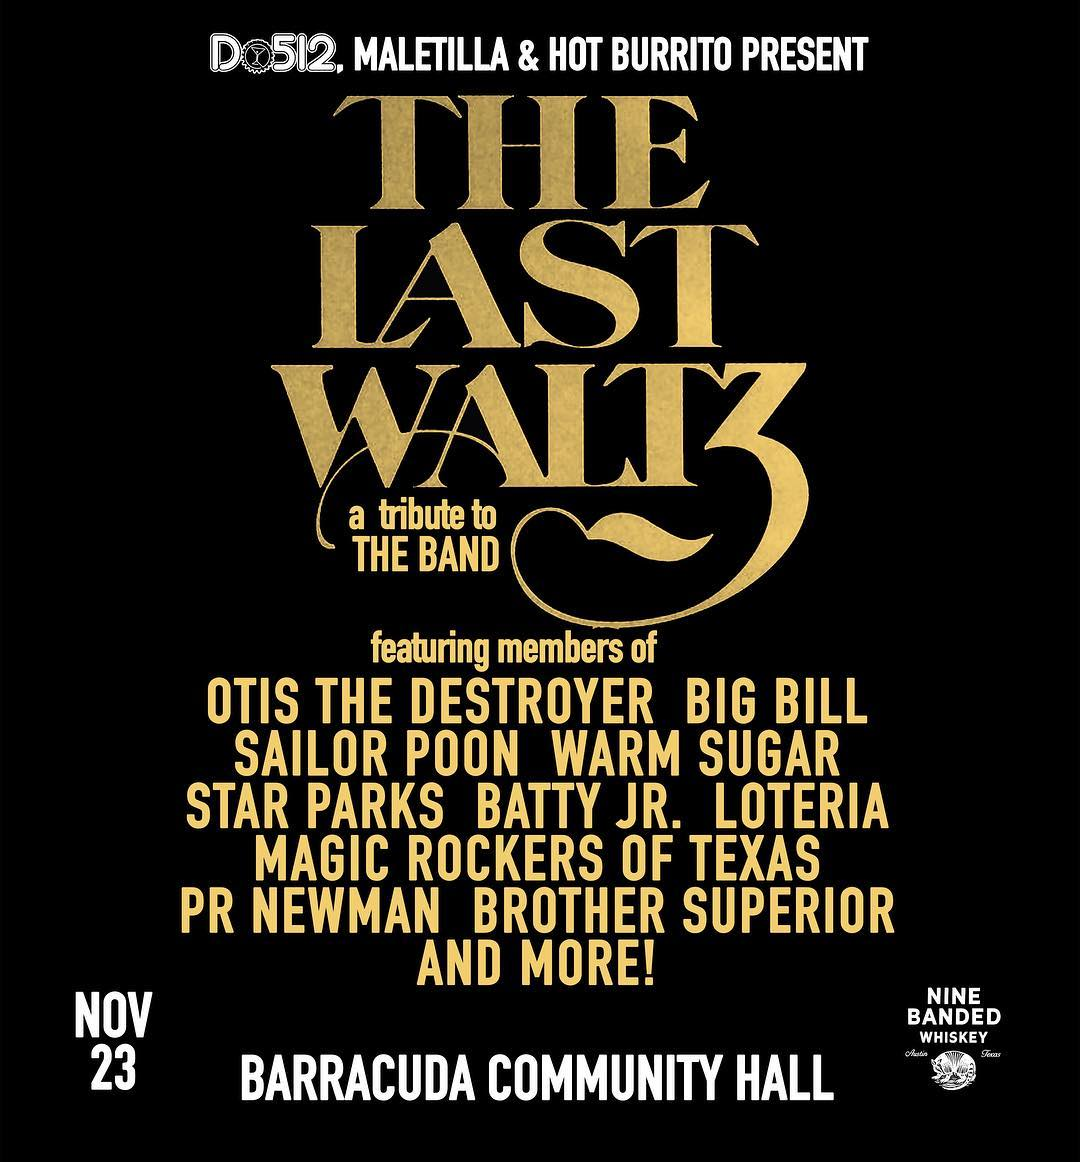 last waltz 2018, barracuda